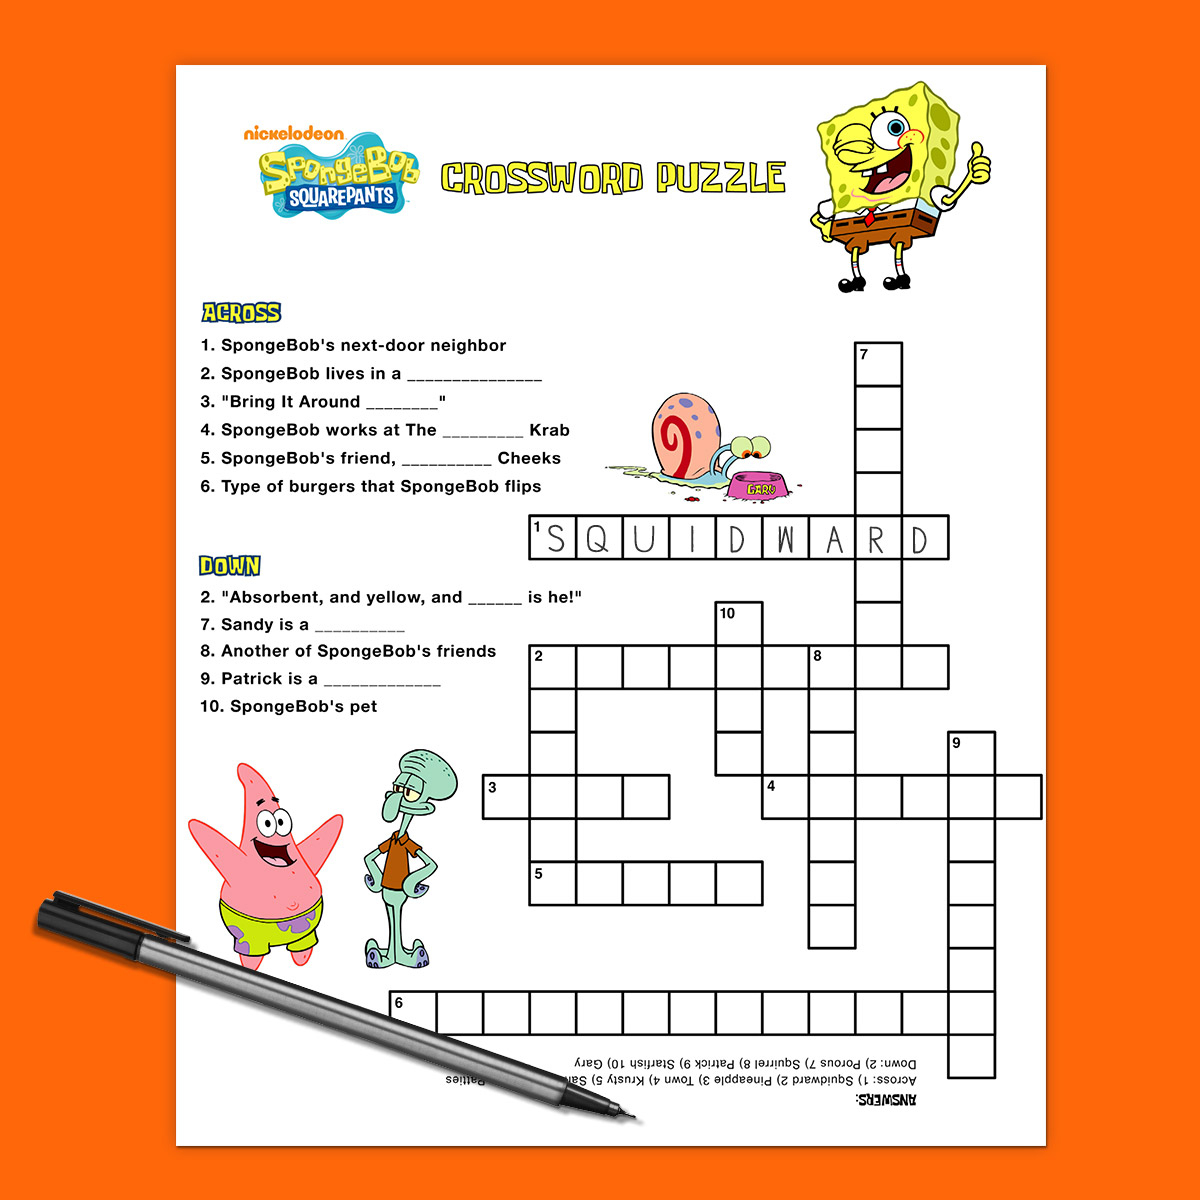 Spongebob Crossword Puzzle | Nickelodeon Parents - Teenage Crossword Puzzles Printable Free